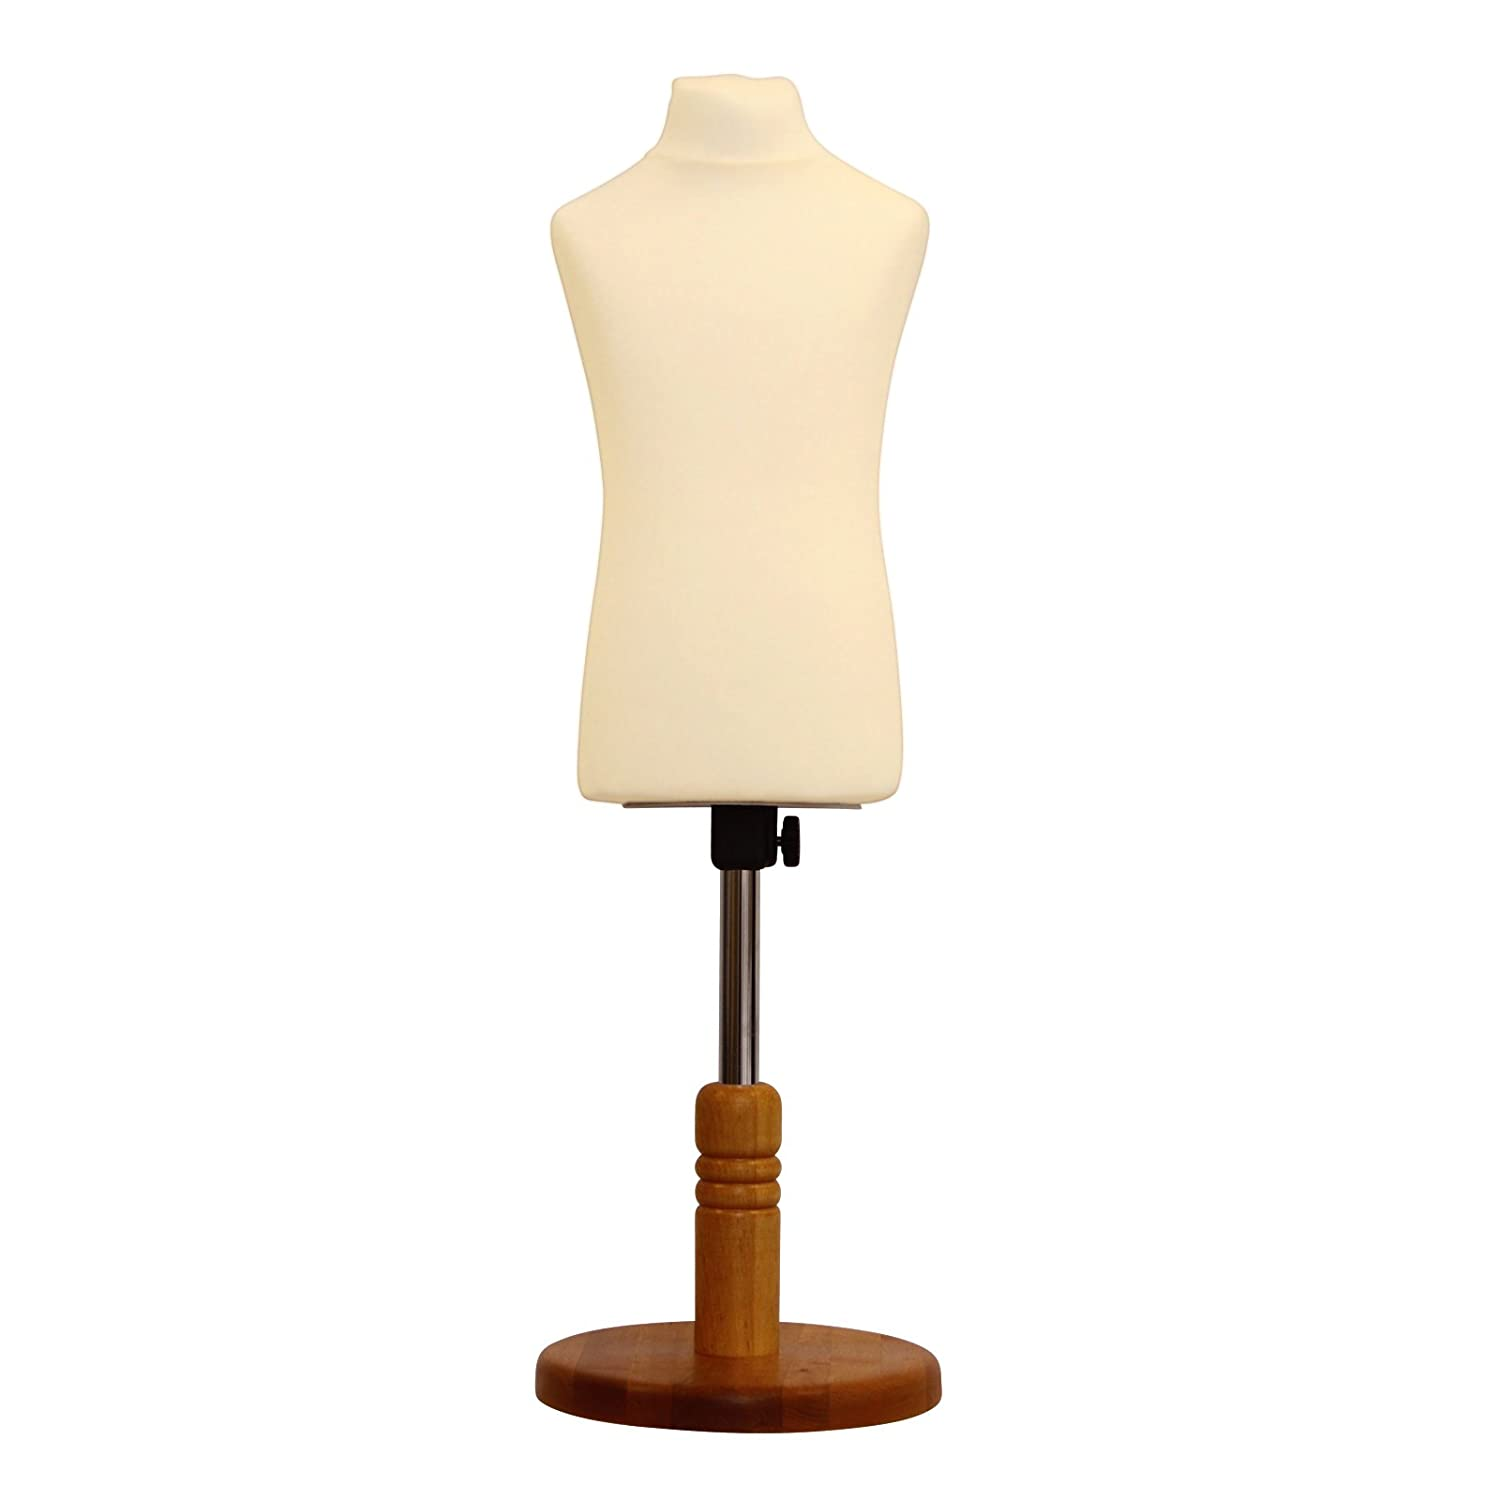 Child Kid Tailors Dummy Cream Age 2/4 Dressmakers Fashion Students Mannequin Display Bust With A Light Wood Base ANKMARKETING LTD